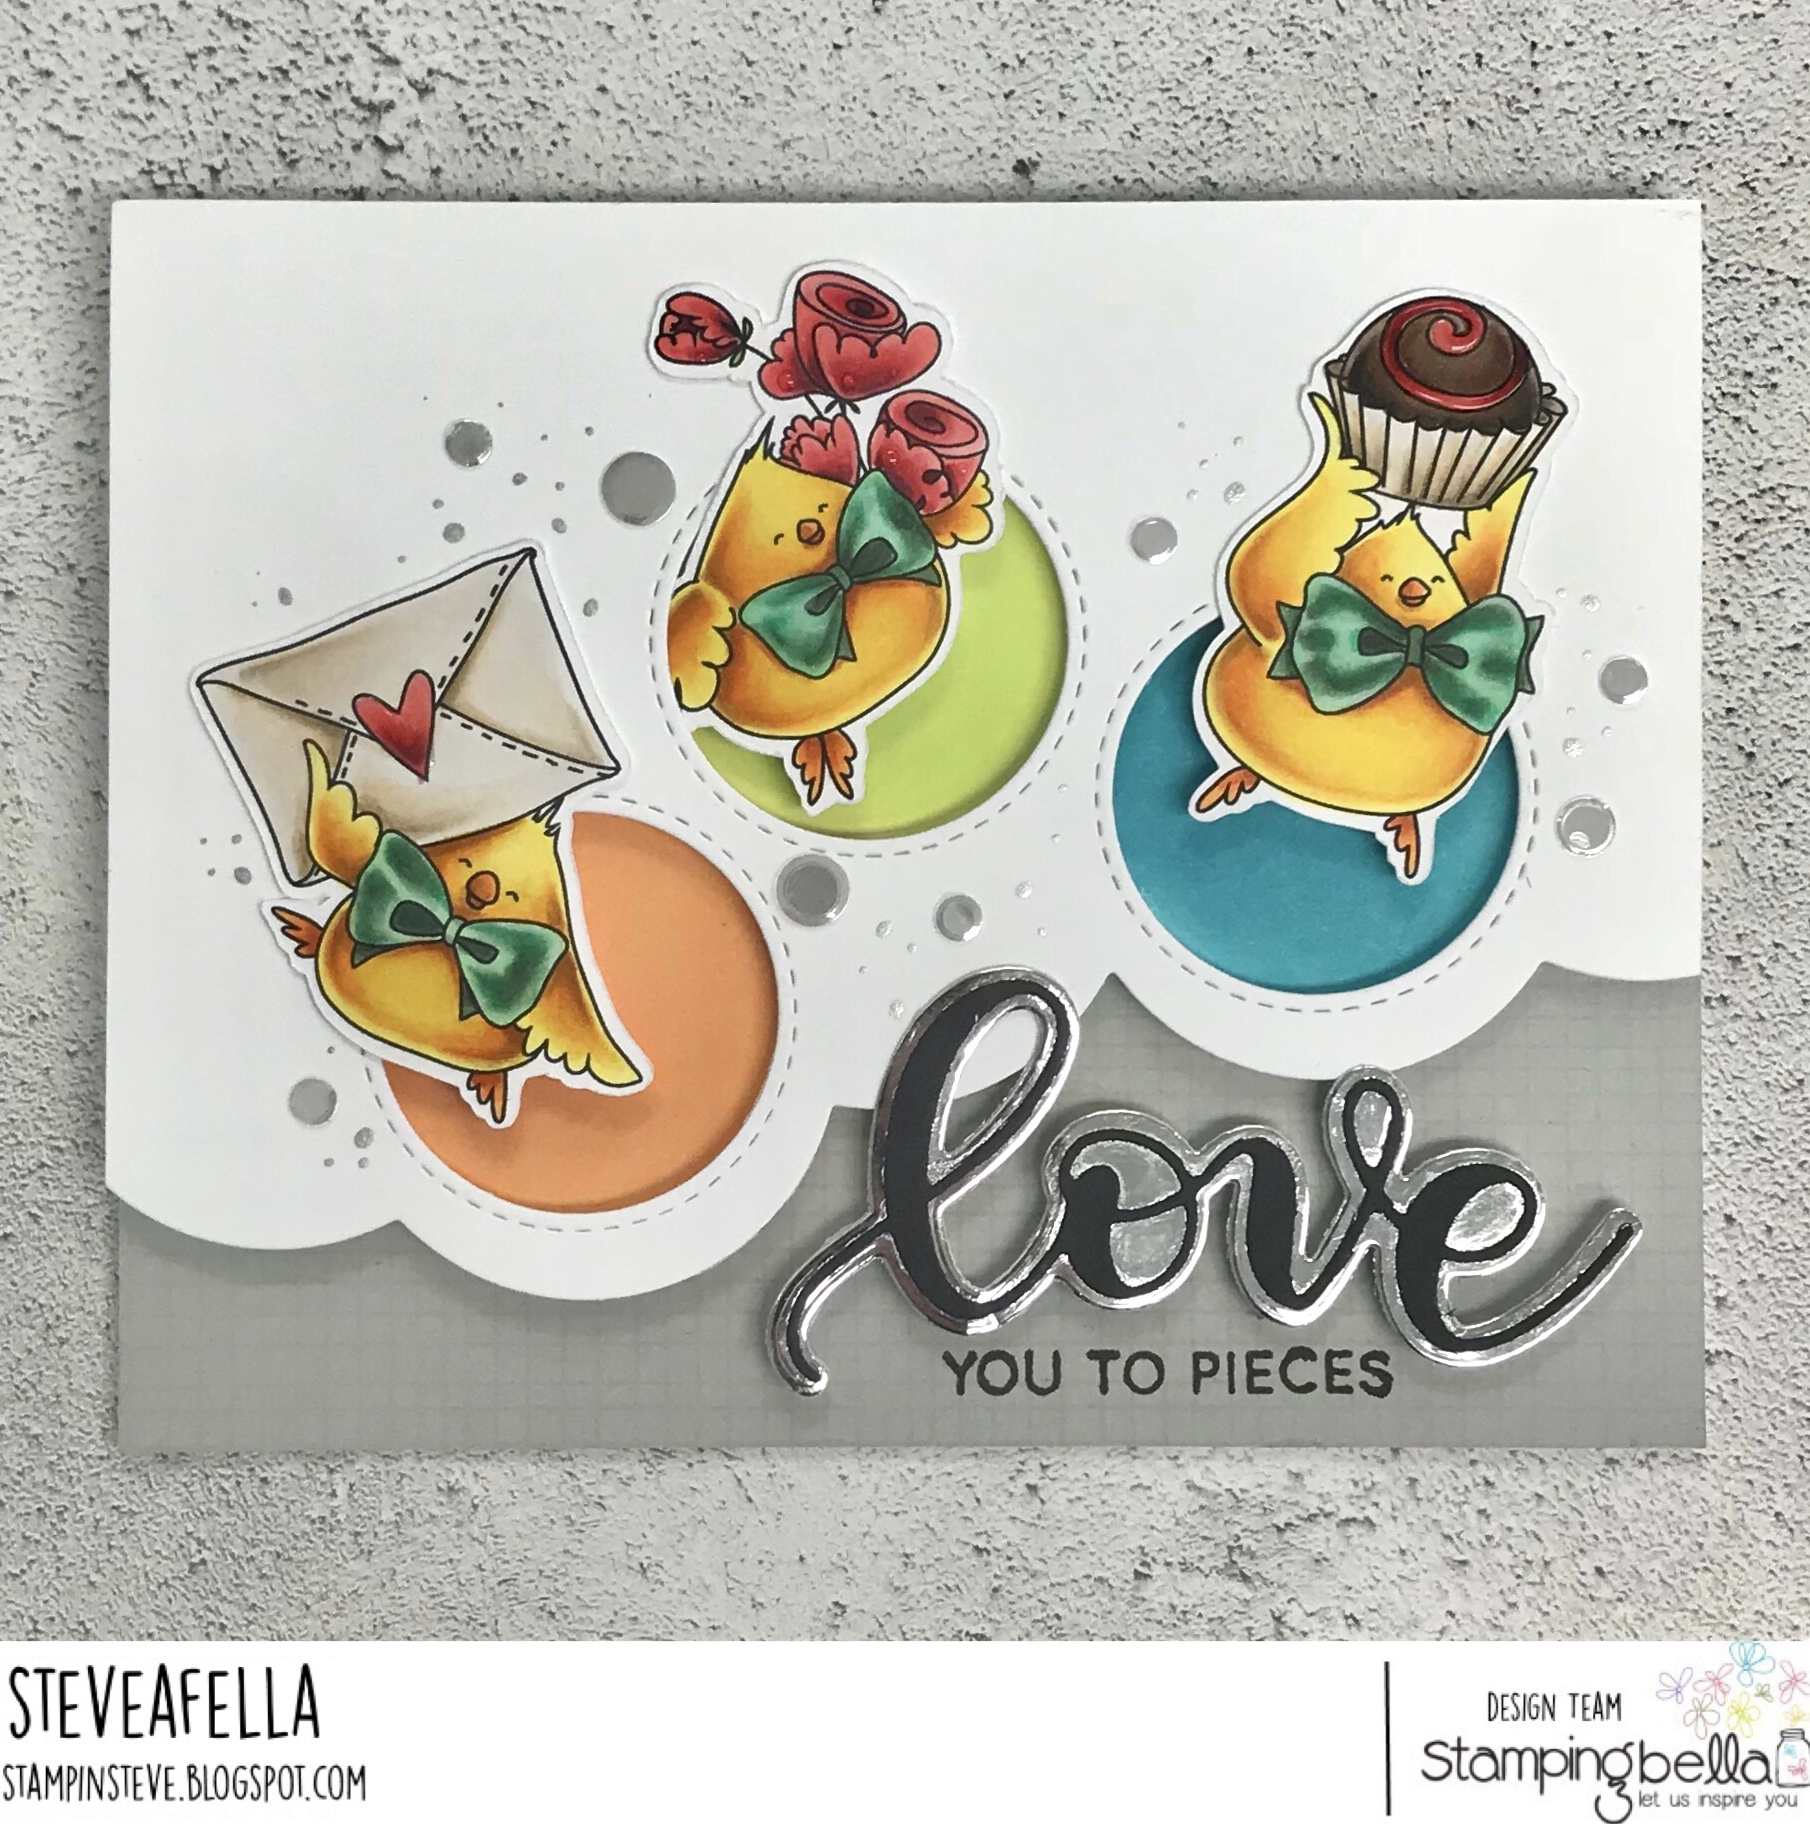 www.stampingbella.com: RUBBER STAMP USED : VALENTINE CHICKS, card made by STEPHEN KROPF